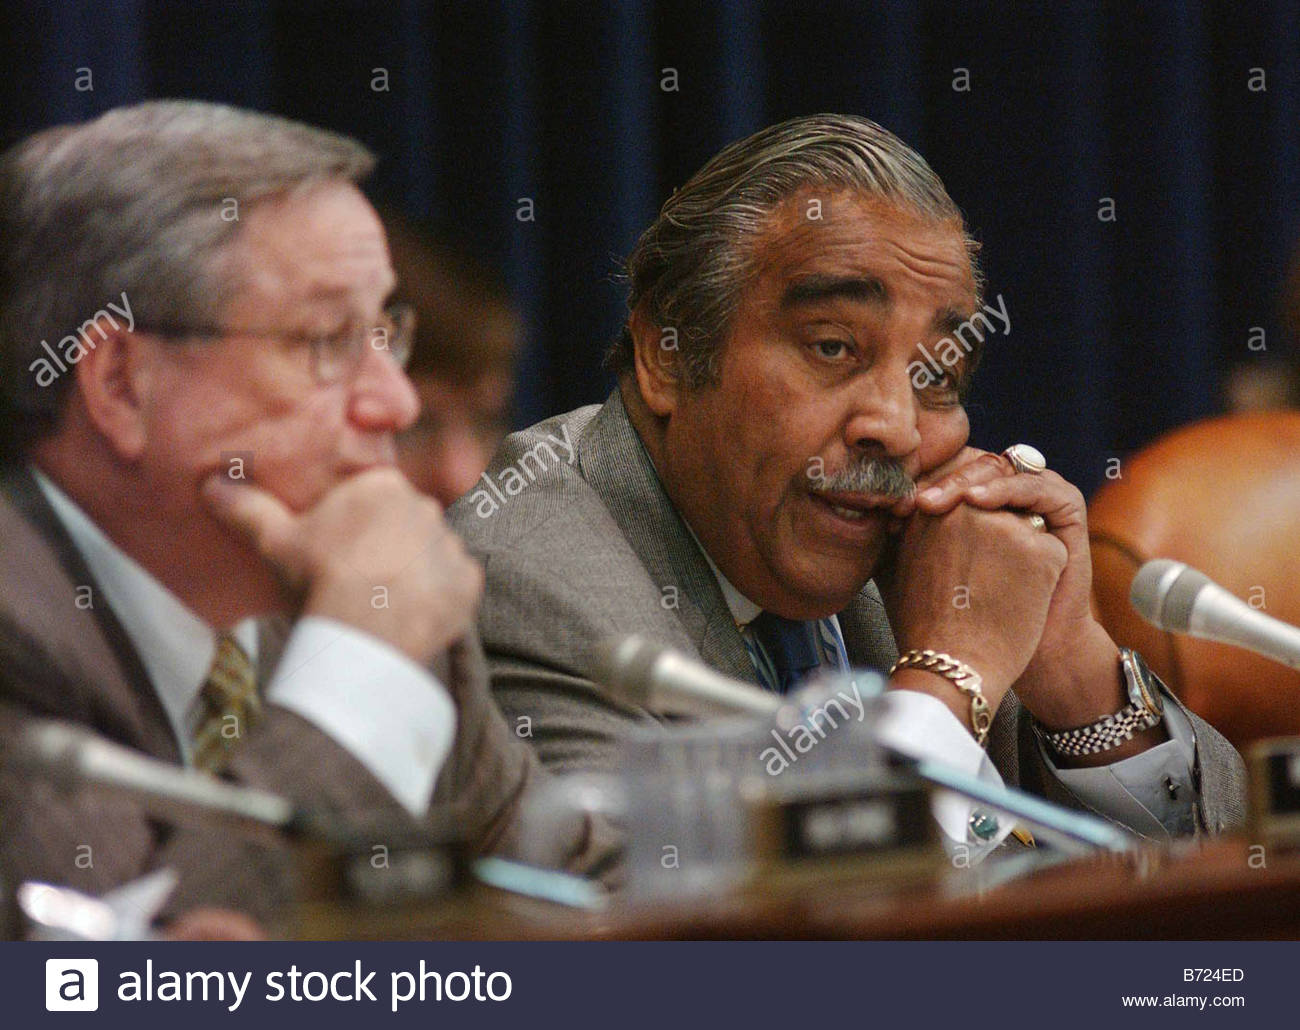 Awesome 4 3 03 ENERGY TAX POLICY ACT Chairman Bill Thomas R Calif And Ranking  Democrat Charles B Rangel N Y During The House Ways Means